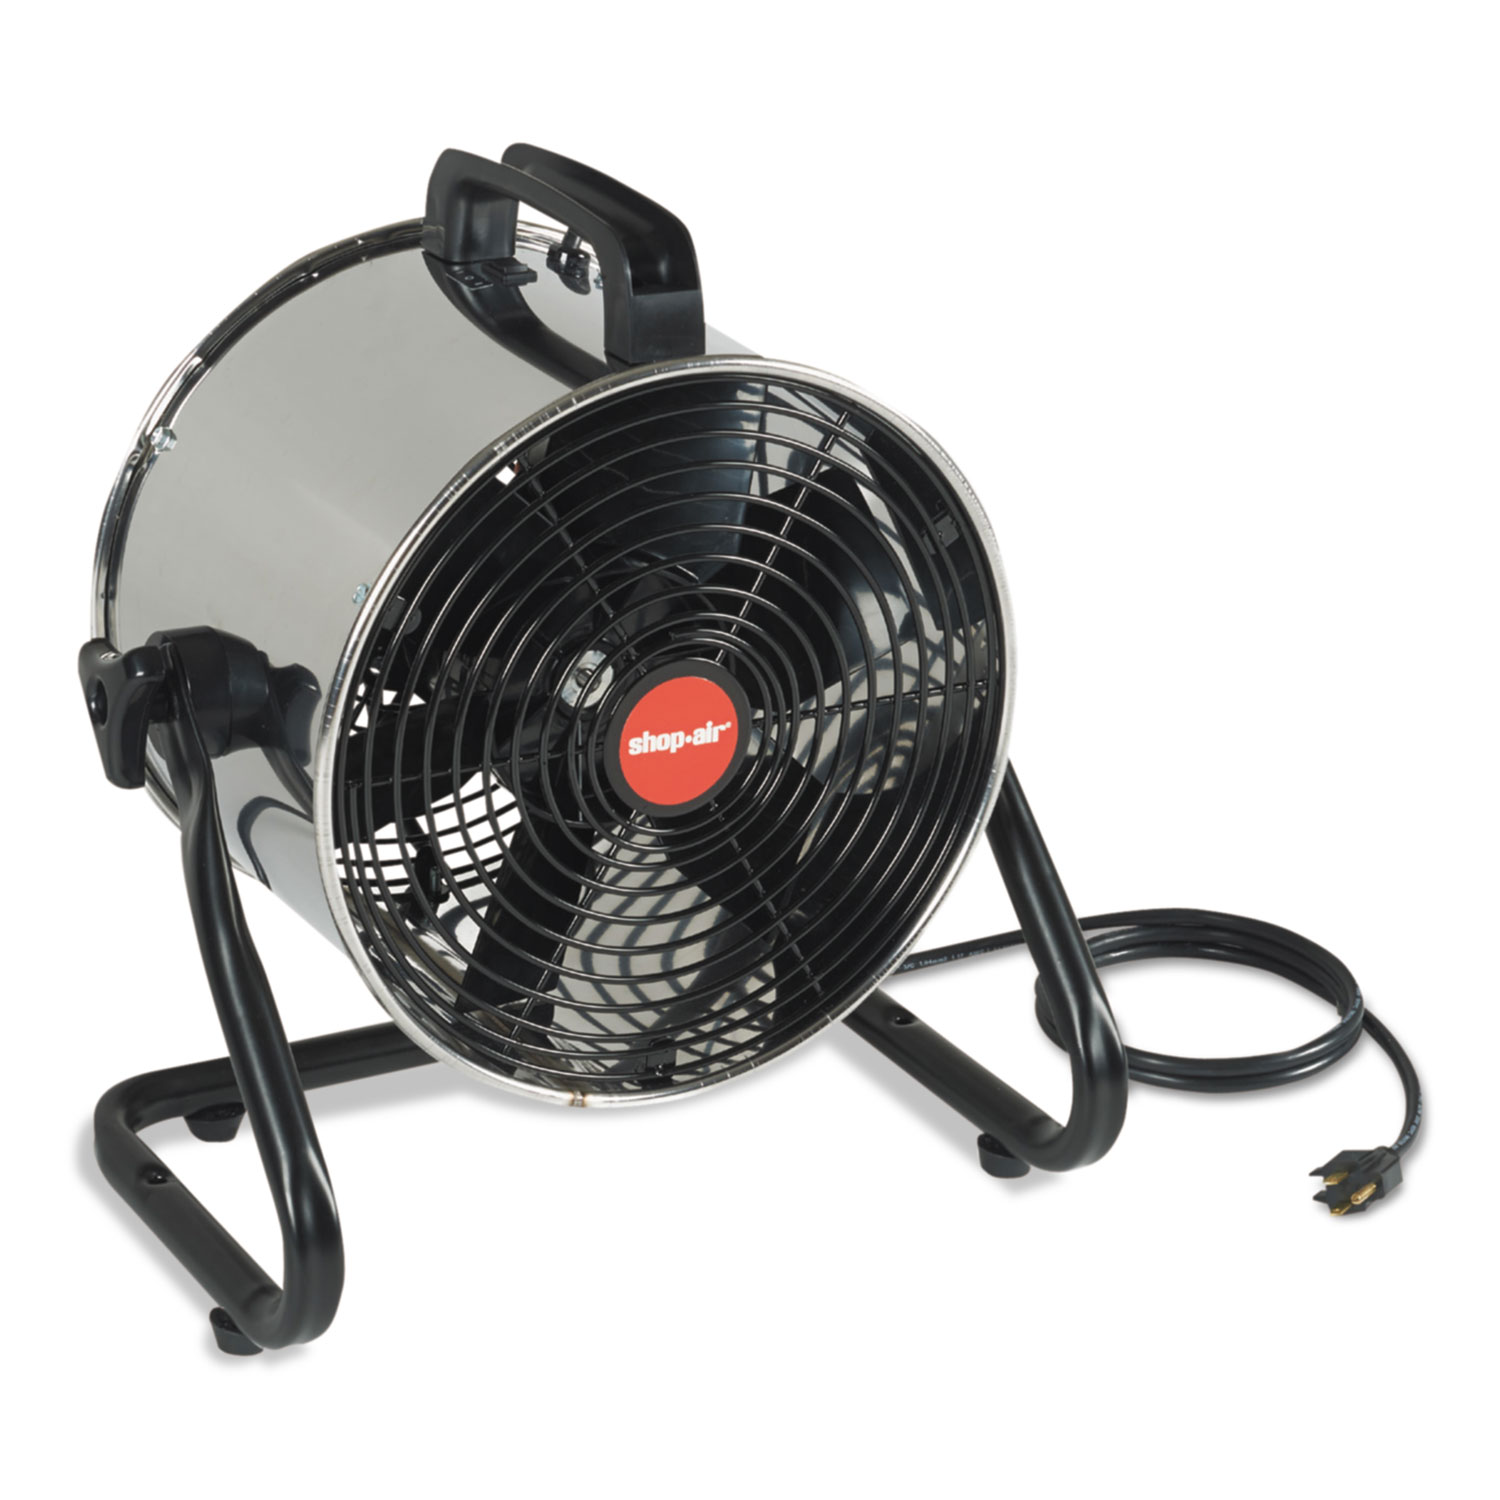 Stainless Steel Portable Blower, 2 Speed, 1.7 A, 2200 CFM